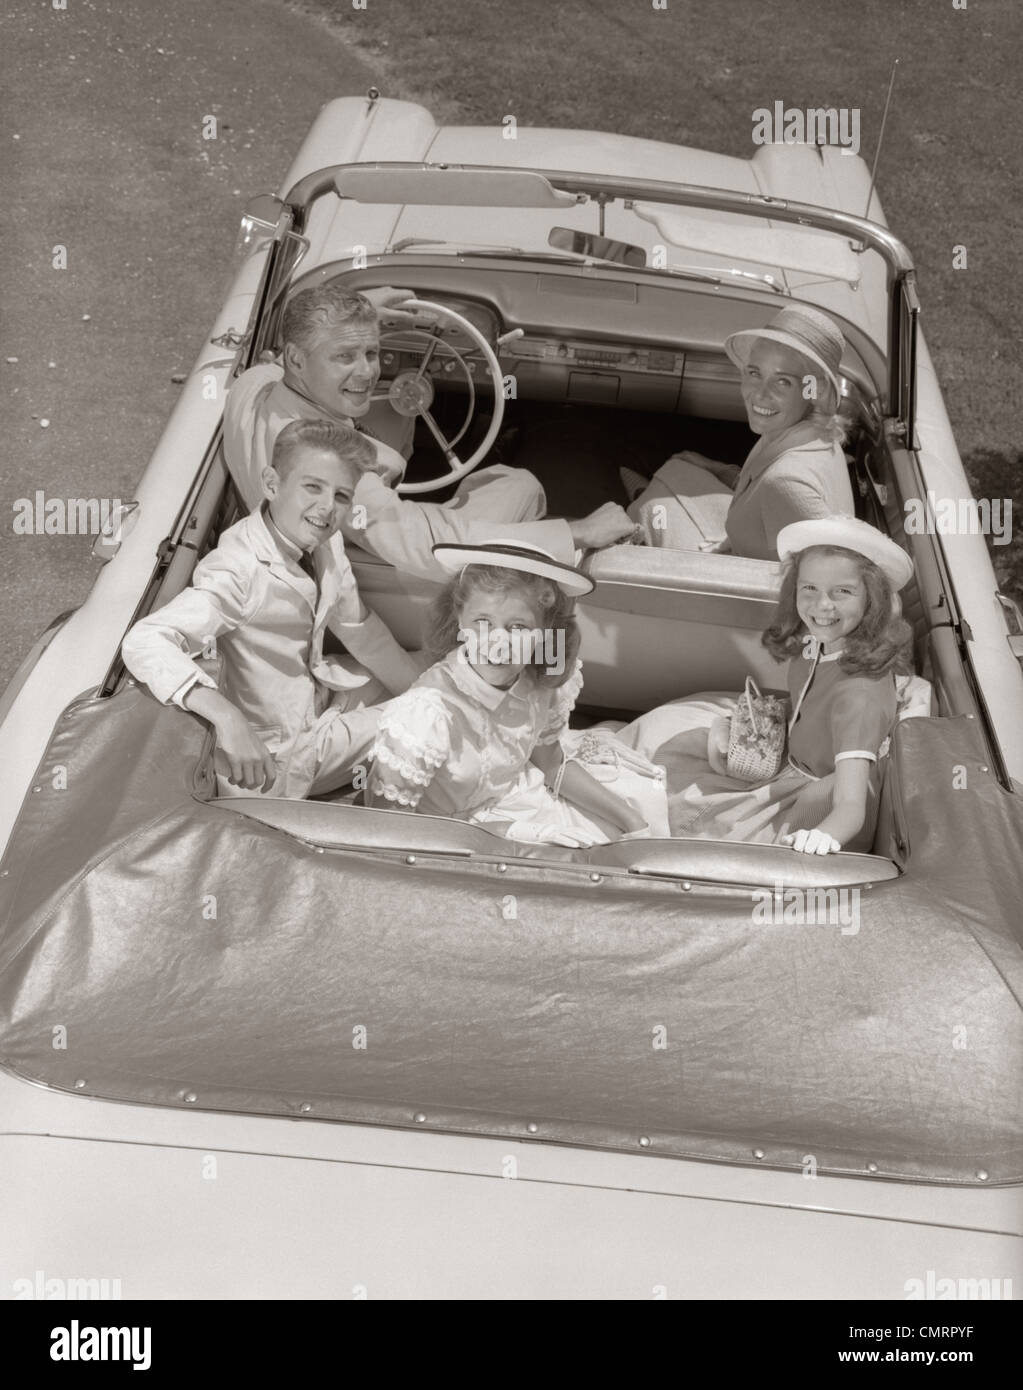 1960s FAMILY PORTRAIT FATHER MOTHER SON TWO DAUGHTERS IN CONVERTIBLE CAR OUTDOOR LOOKING UP AT CAMERA - Stock Image